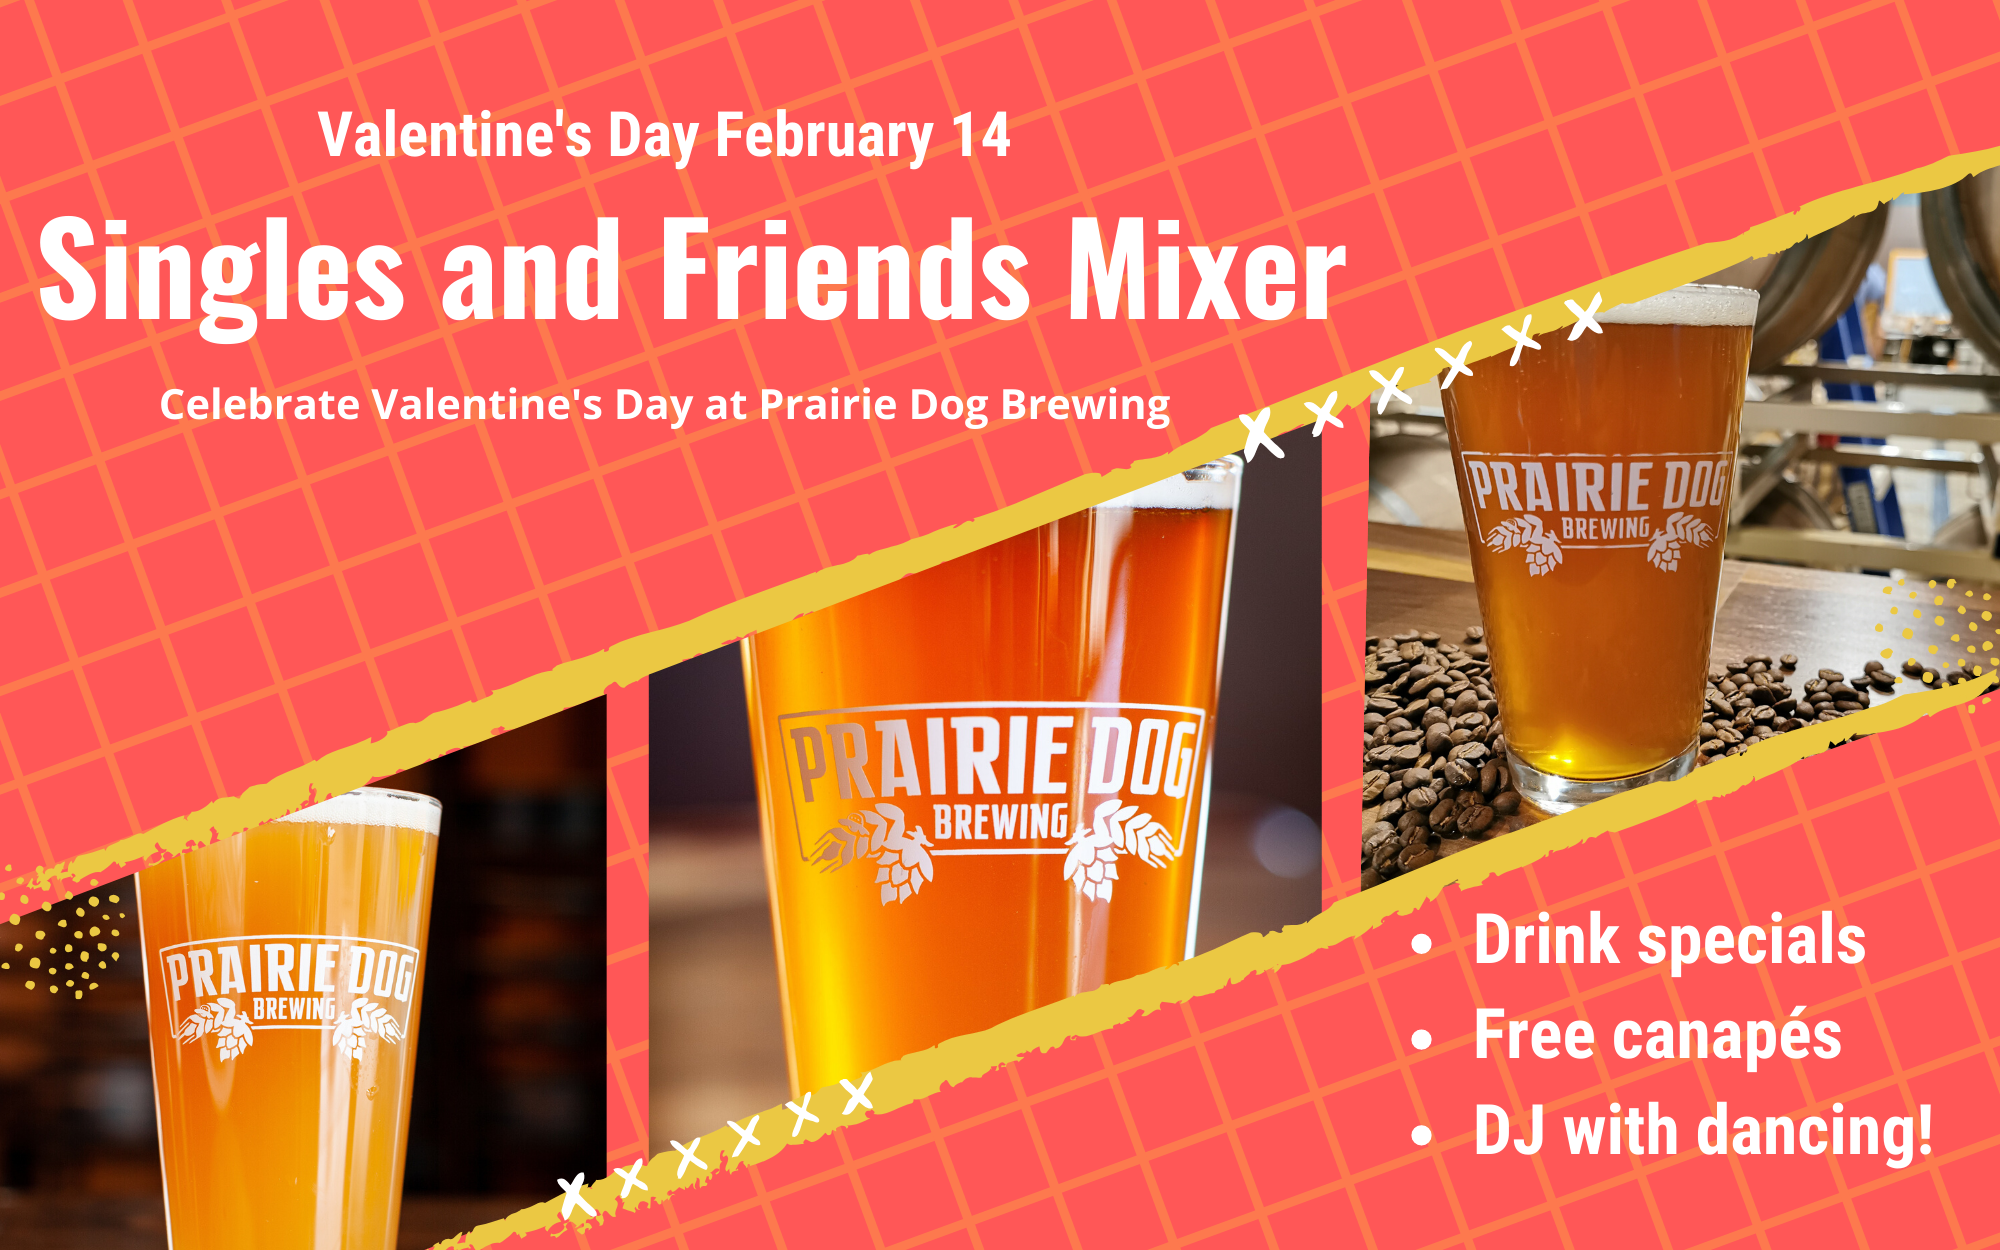 Singles and Friends Mixer